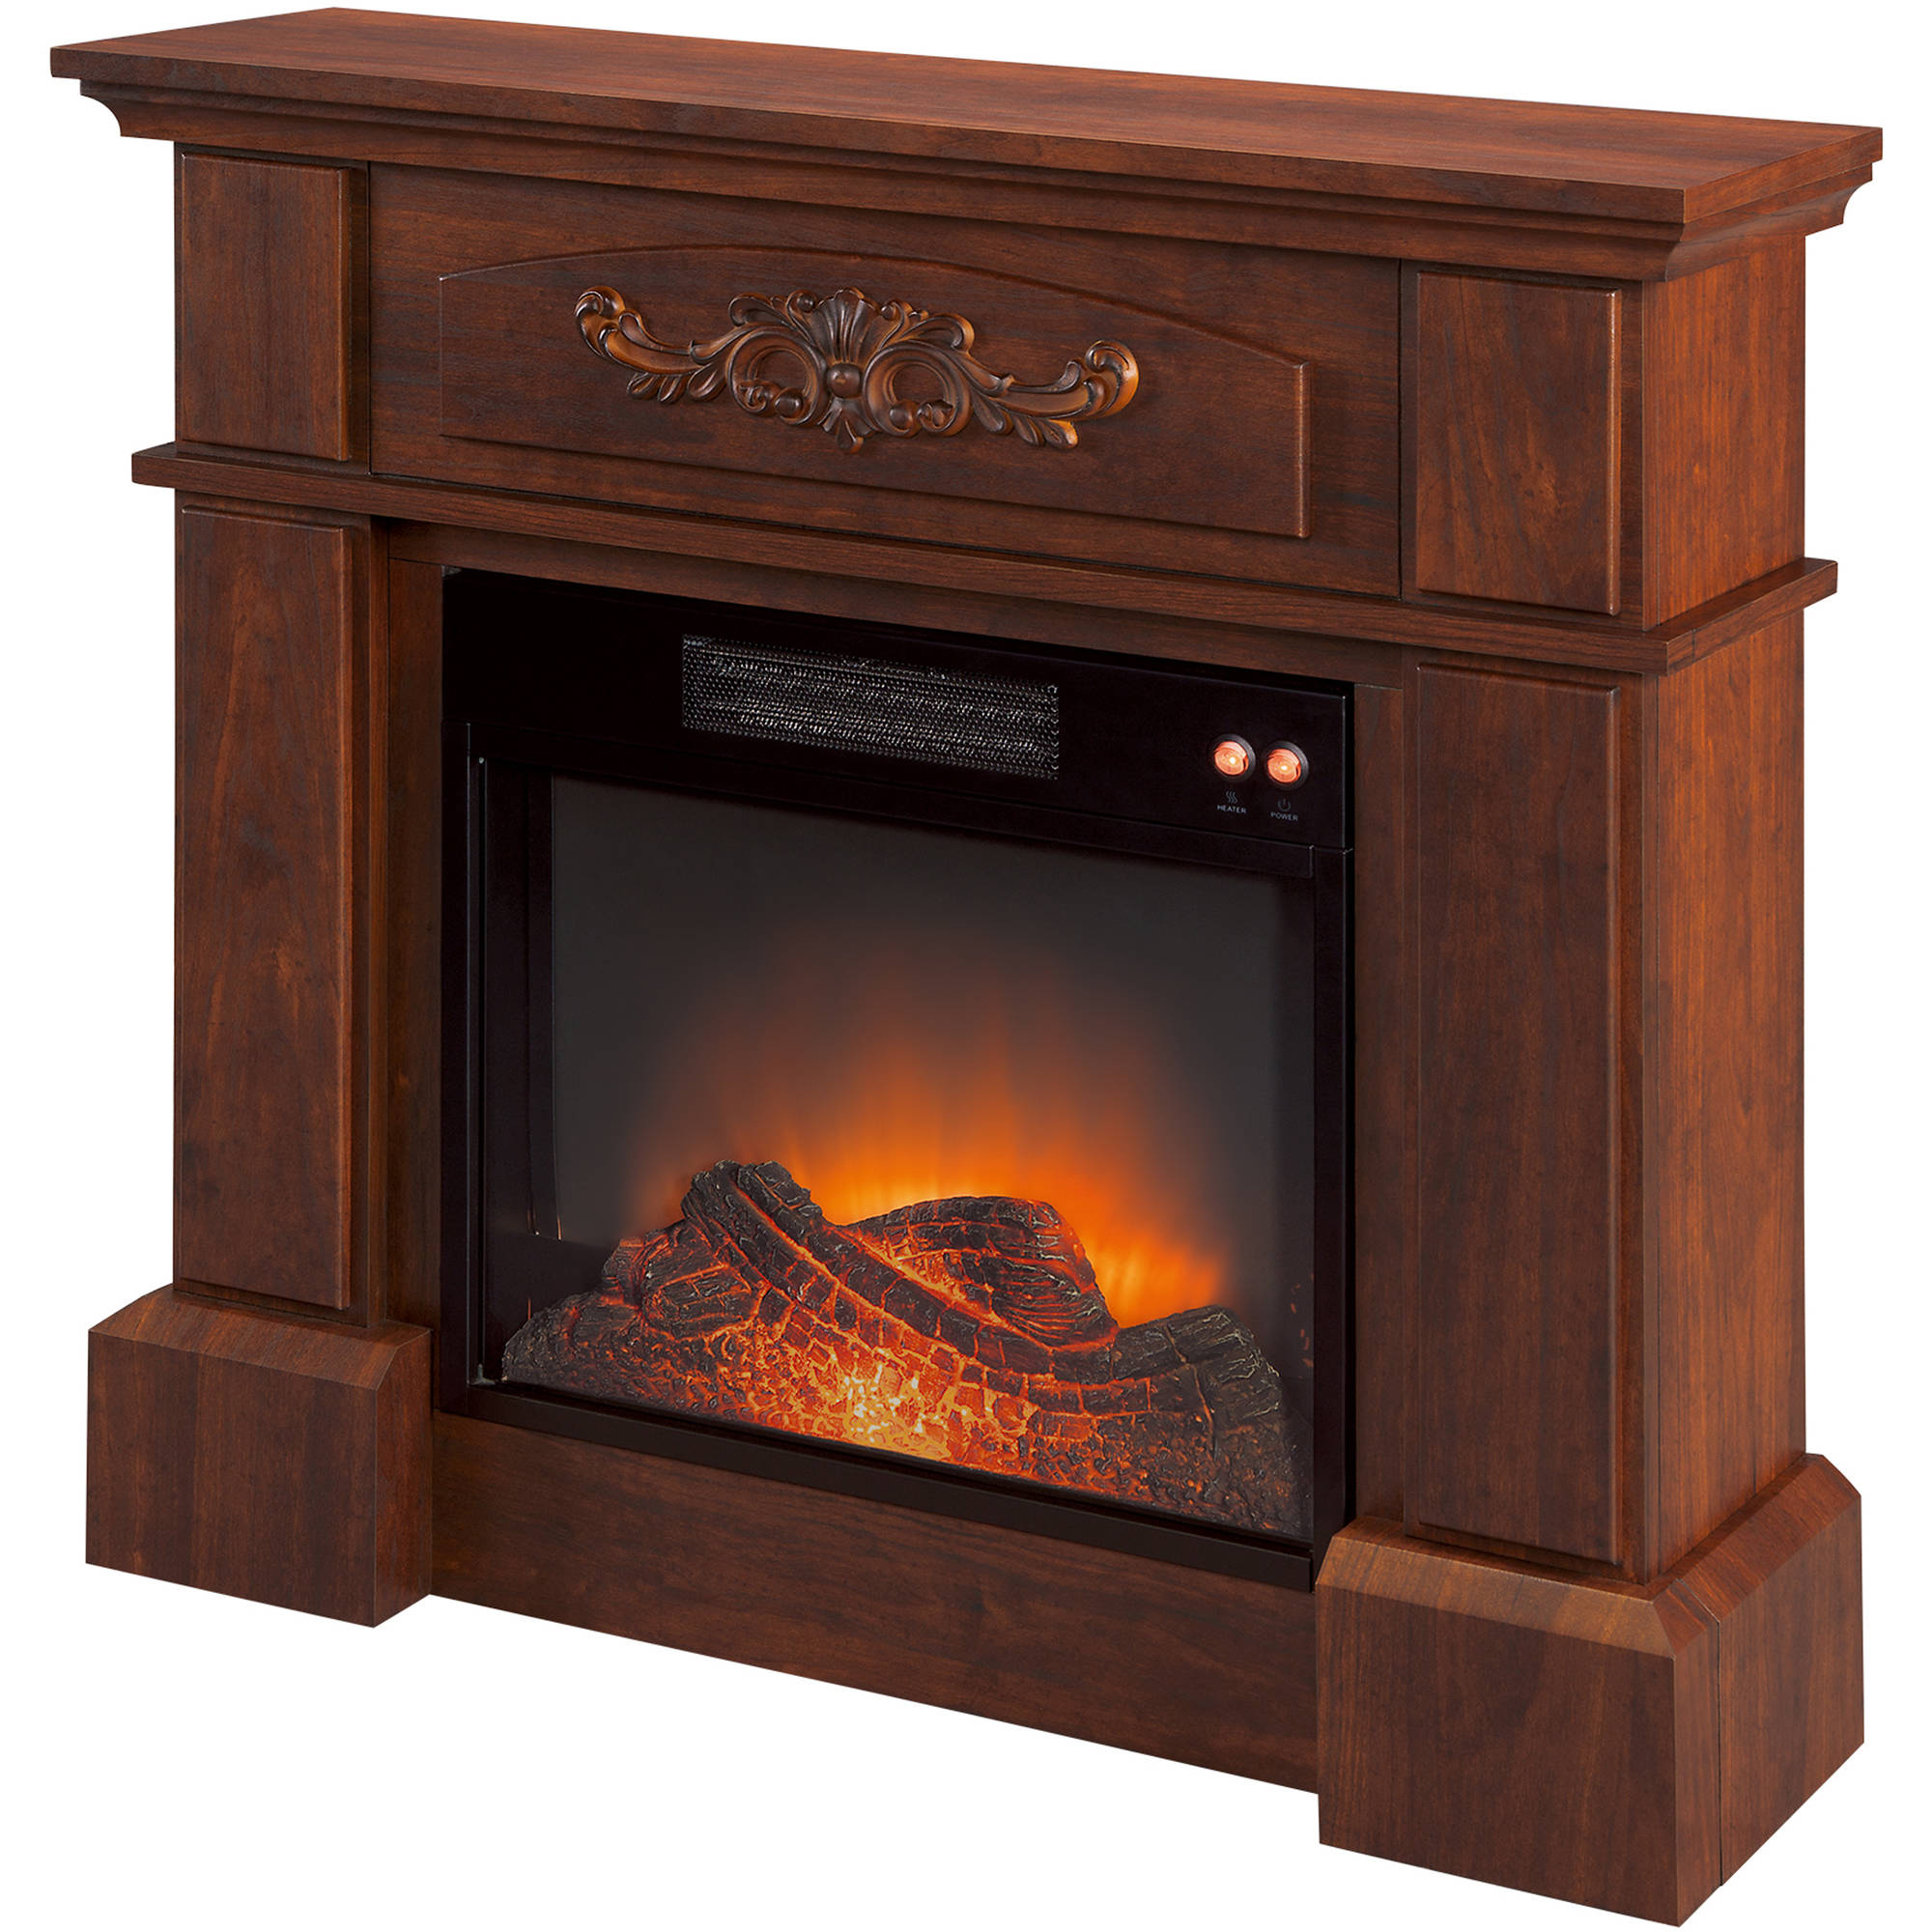 1500W Hearth Trends Infrared Electric Fireplace - Walmart.com